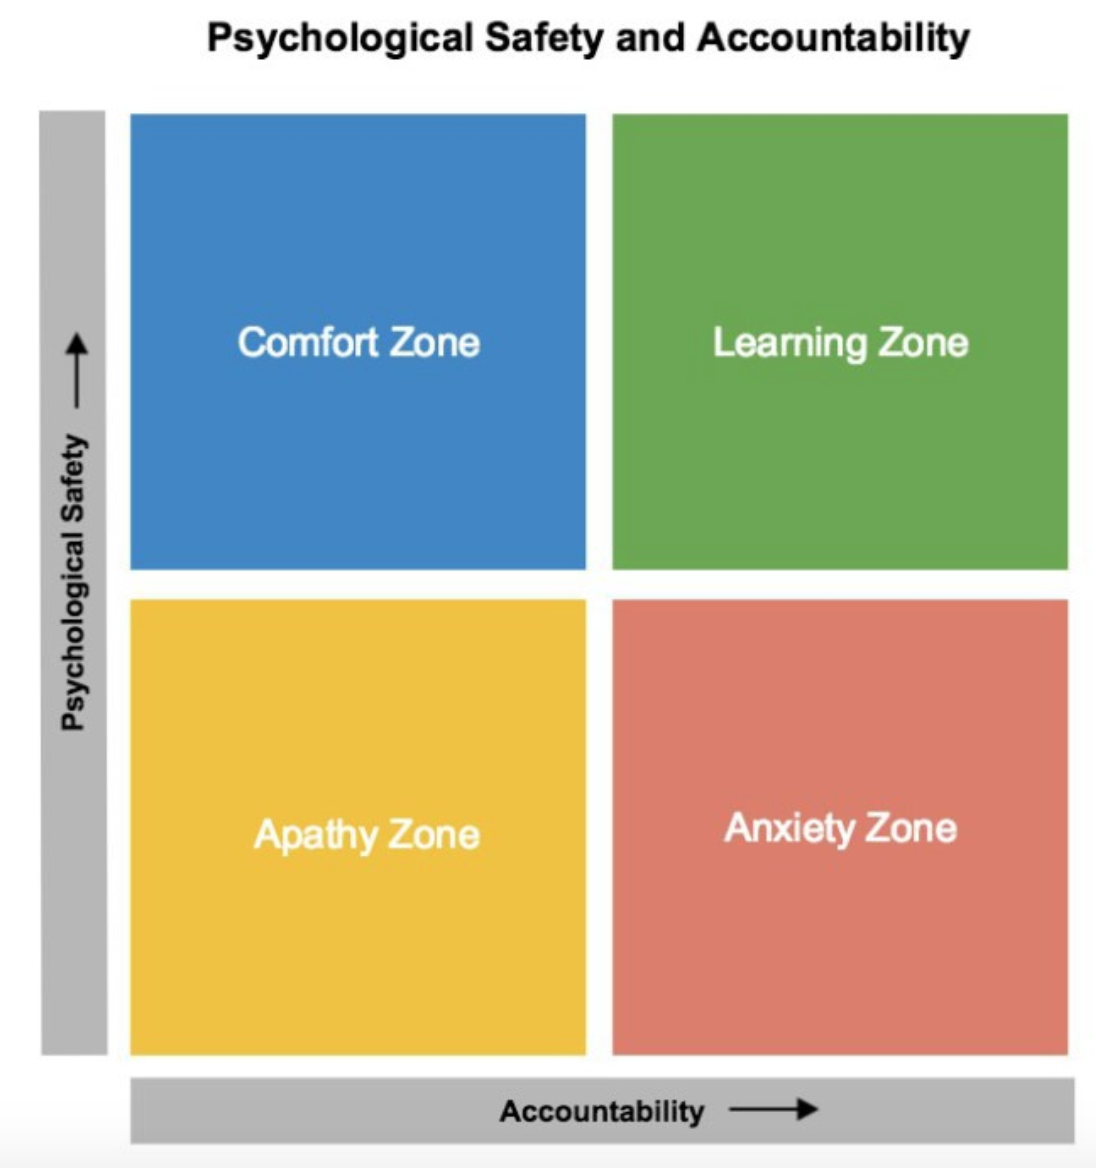 psychological safety and accountability.png